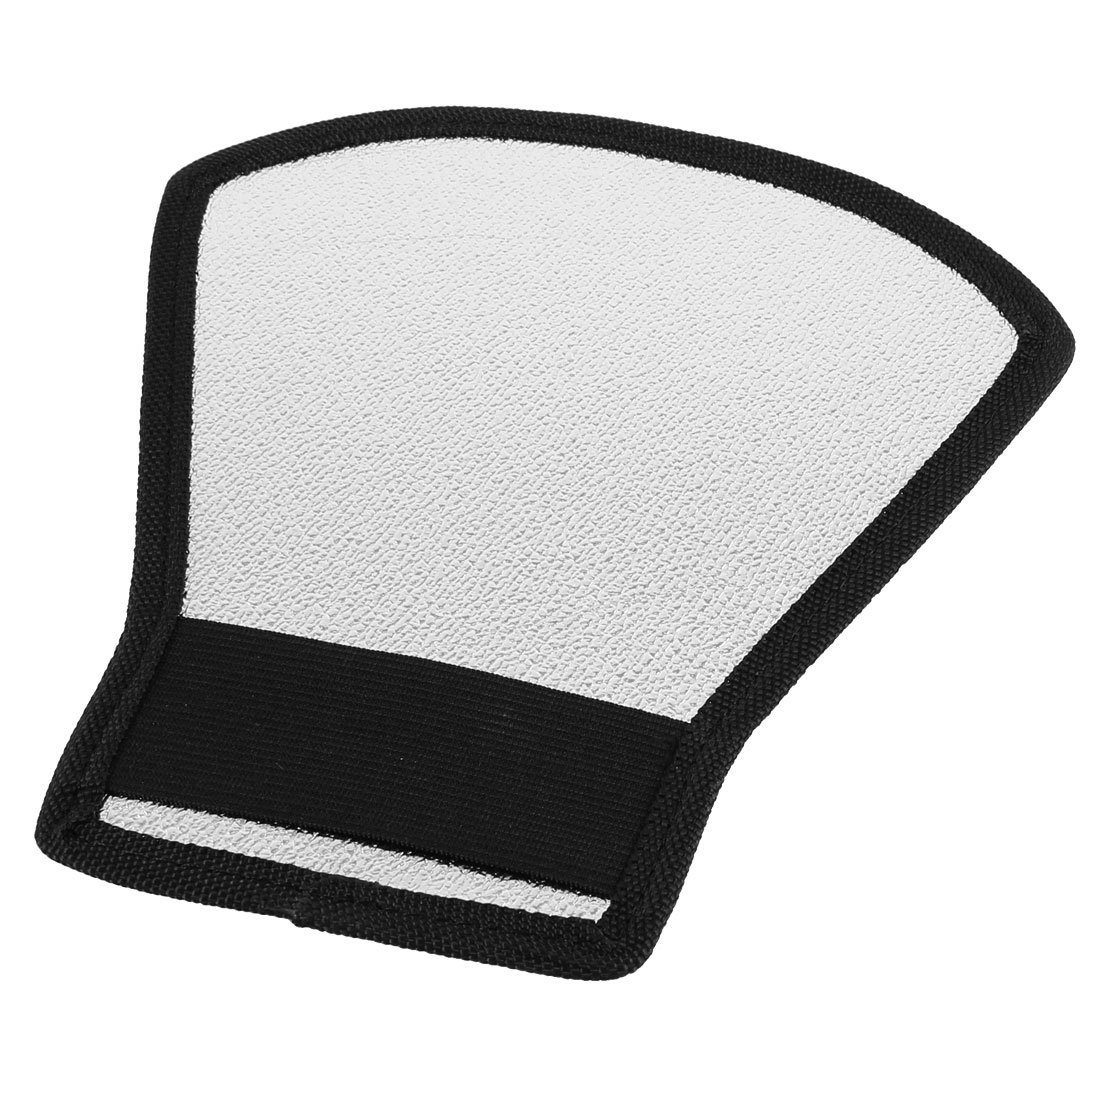 White Silver Tone Flash Light Barrier Reflector for SLR Camera(China (Mainland))